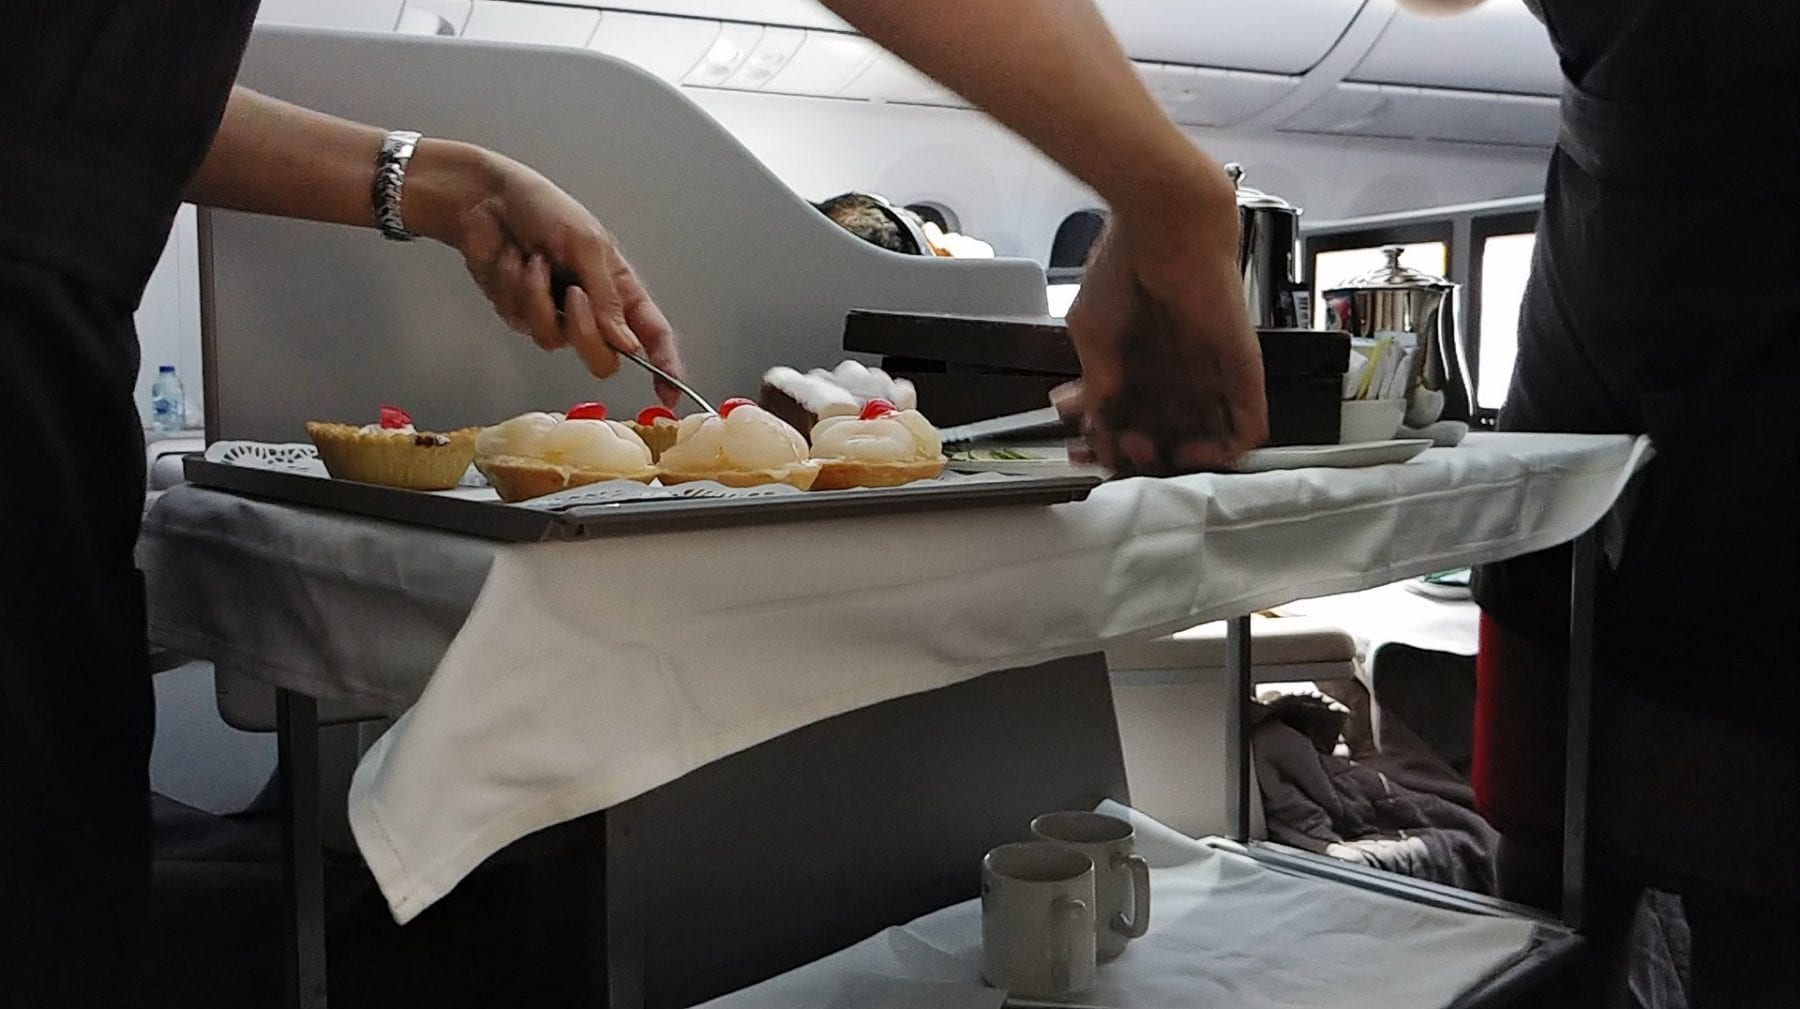 Royal Jordanian business class dessert trolley